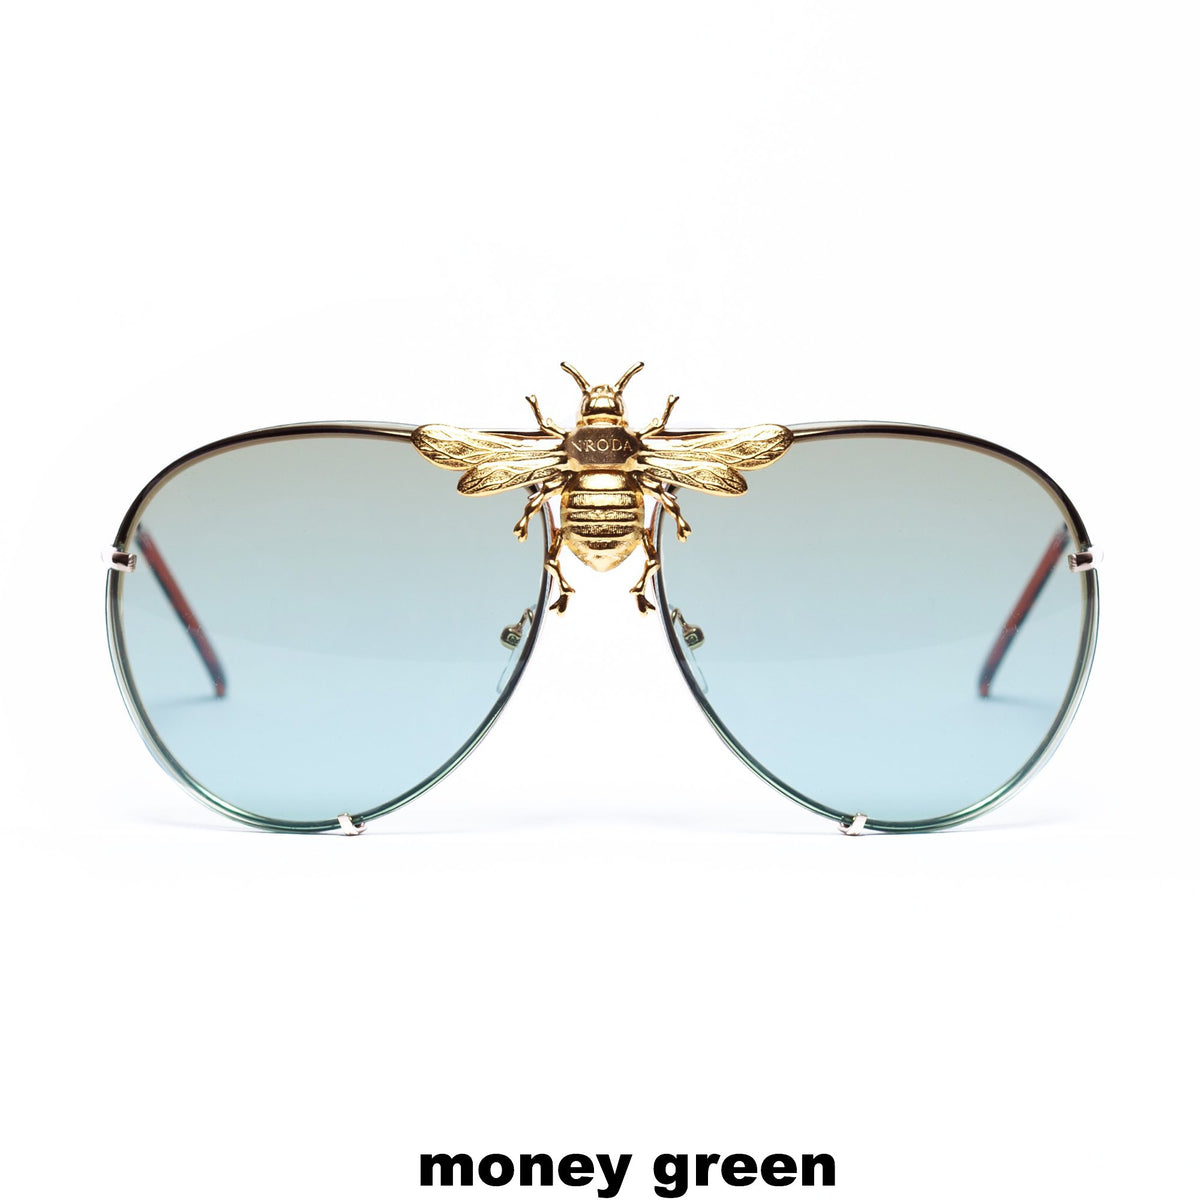 I'll Be Rich Forever Bee Sunglasses - Limited Sunset Edition Money Green SUNNIES + OPTICS Sunglasses Collection, Tnemnroda man- NRODA